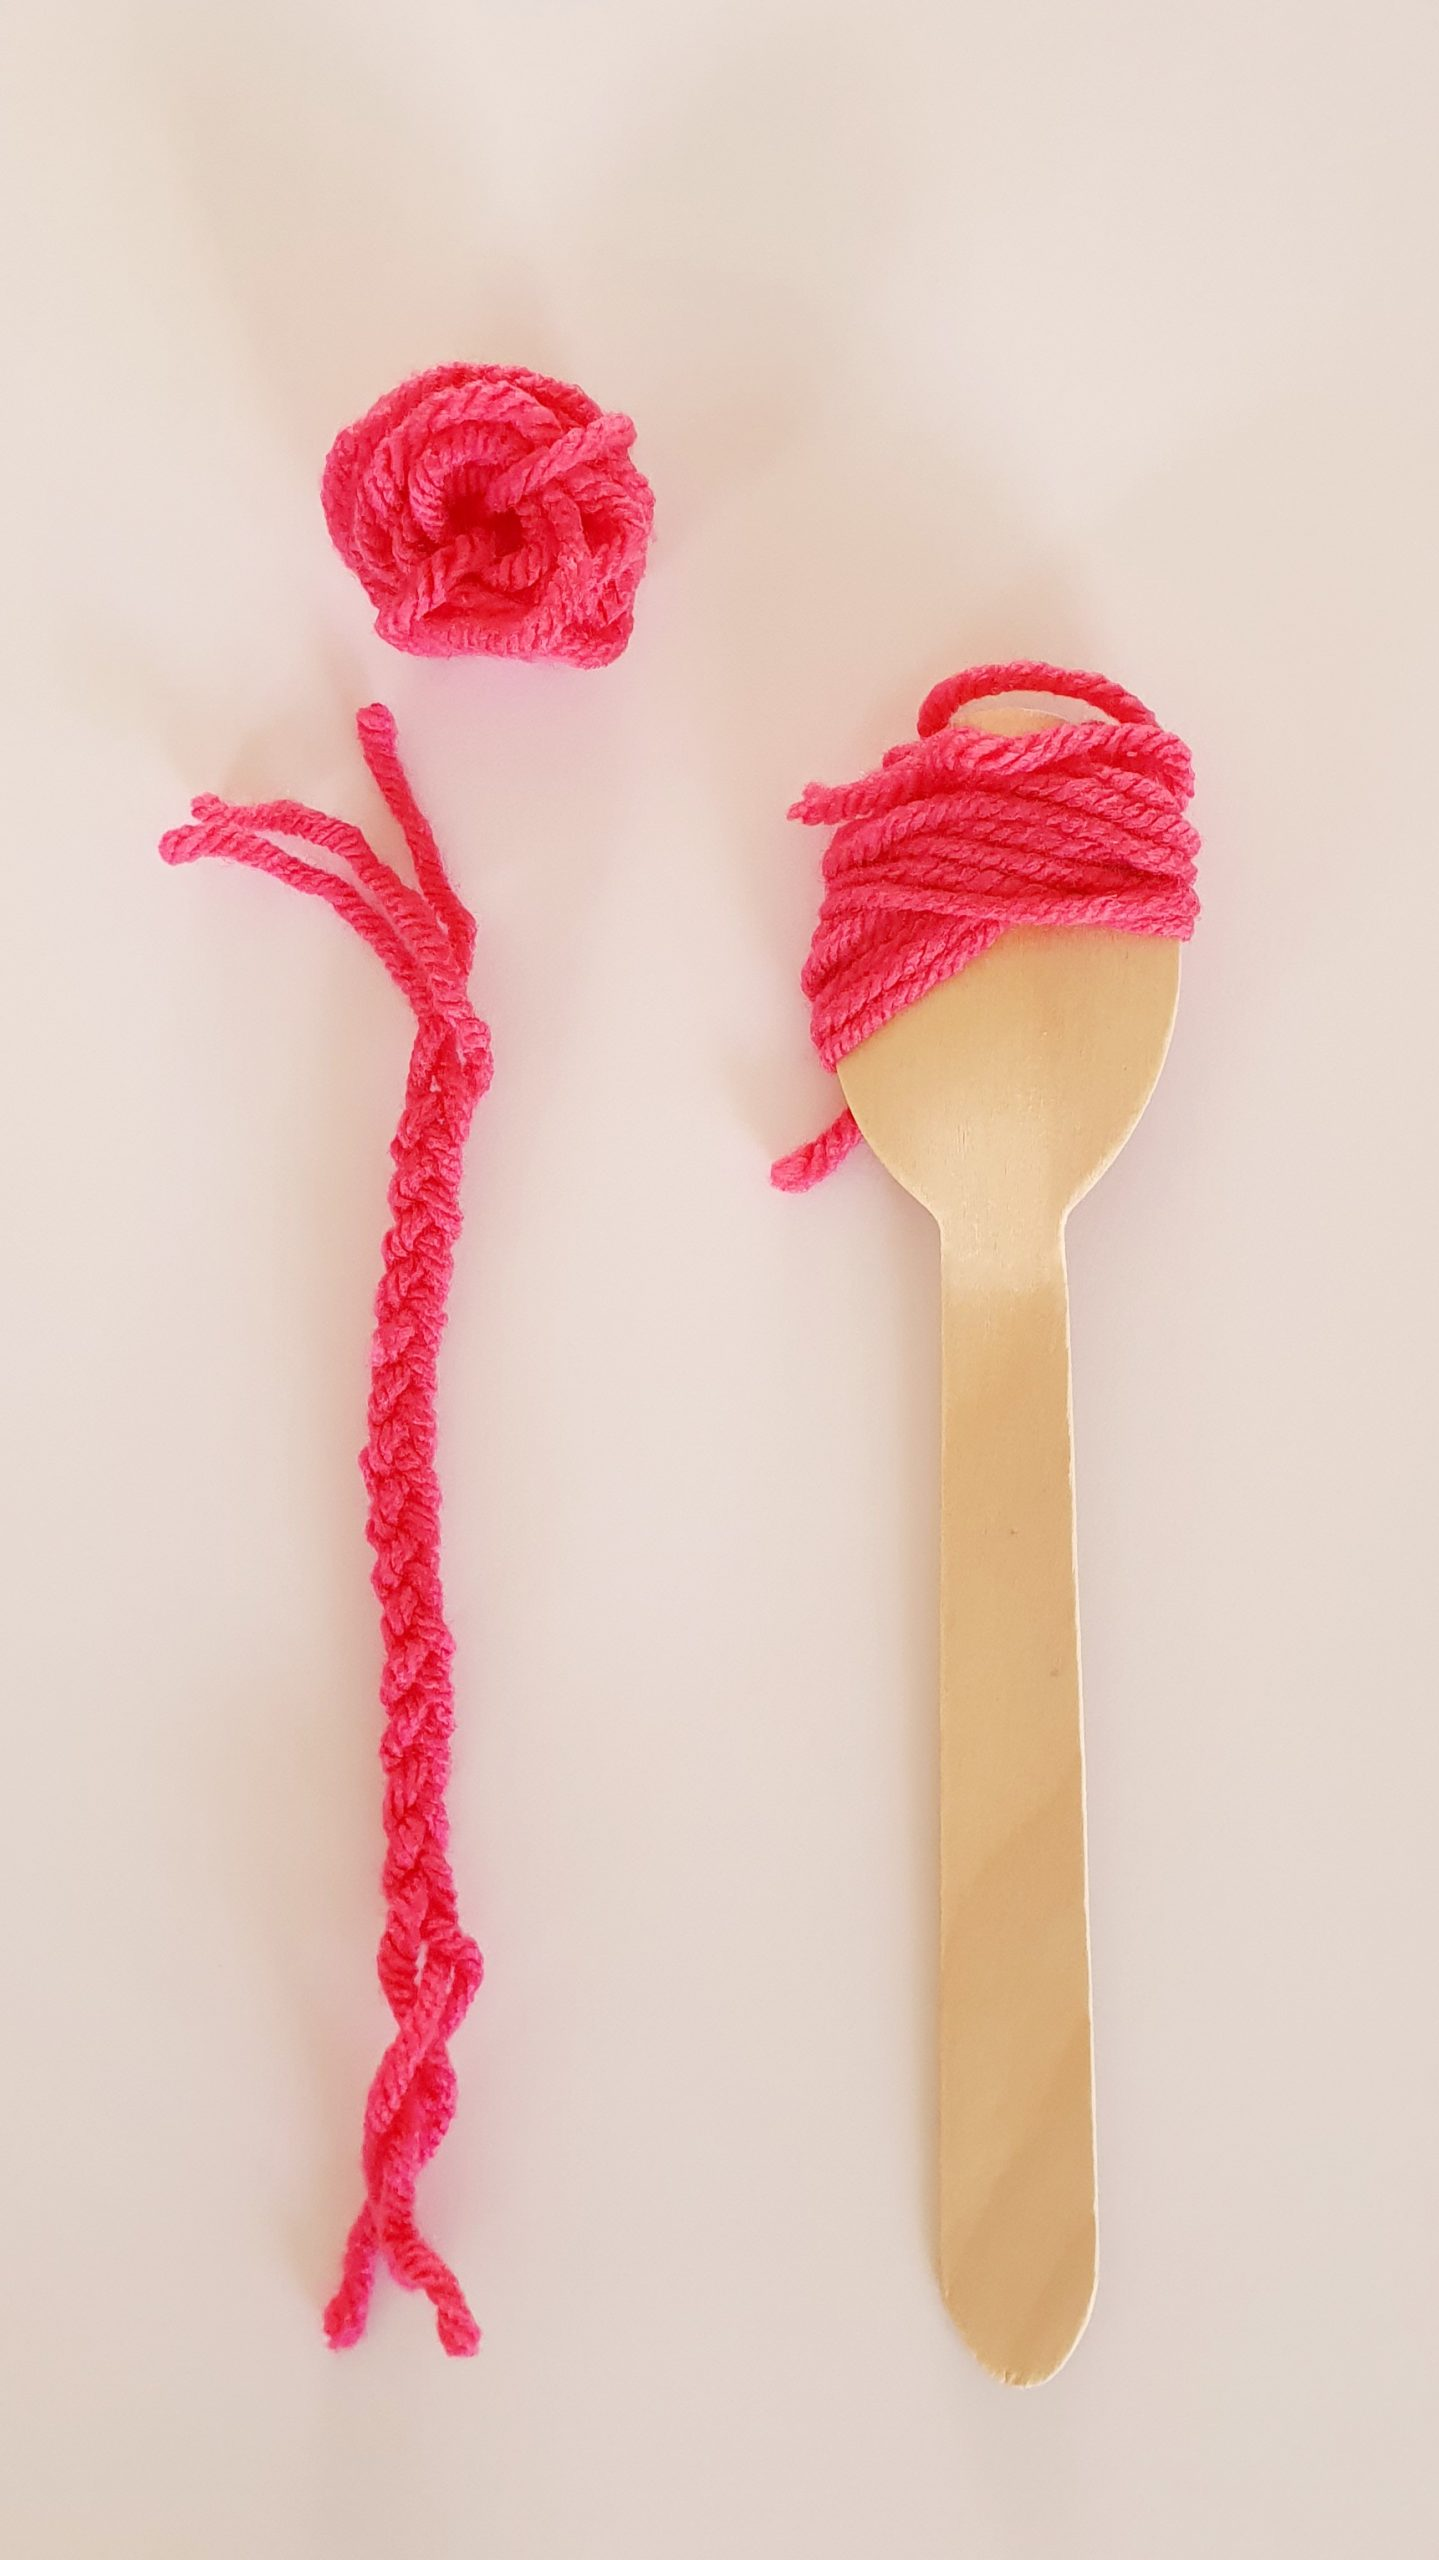 Make Your Own Spoon Doll - Hair